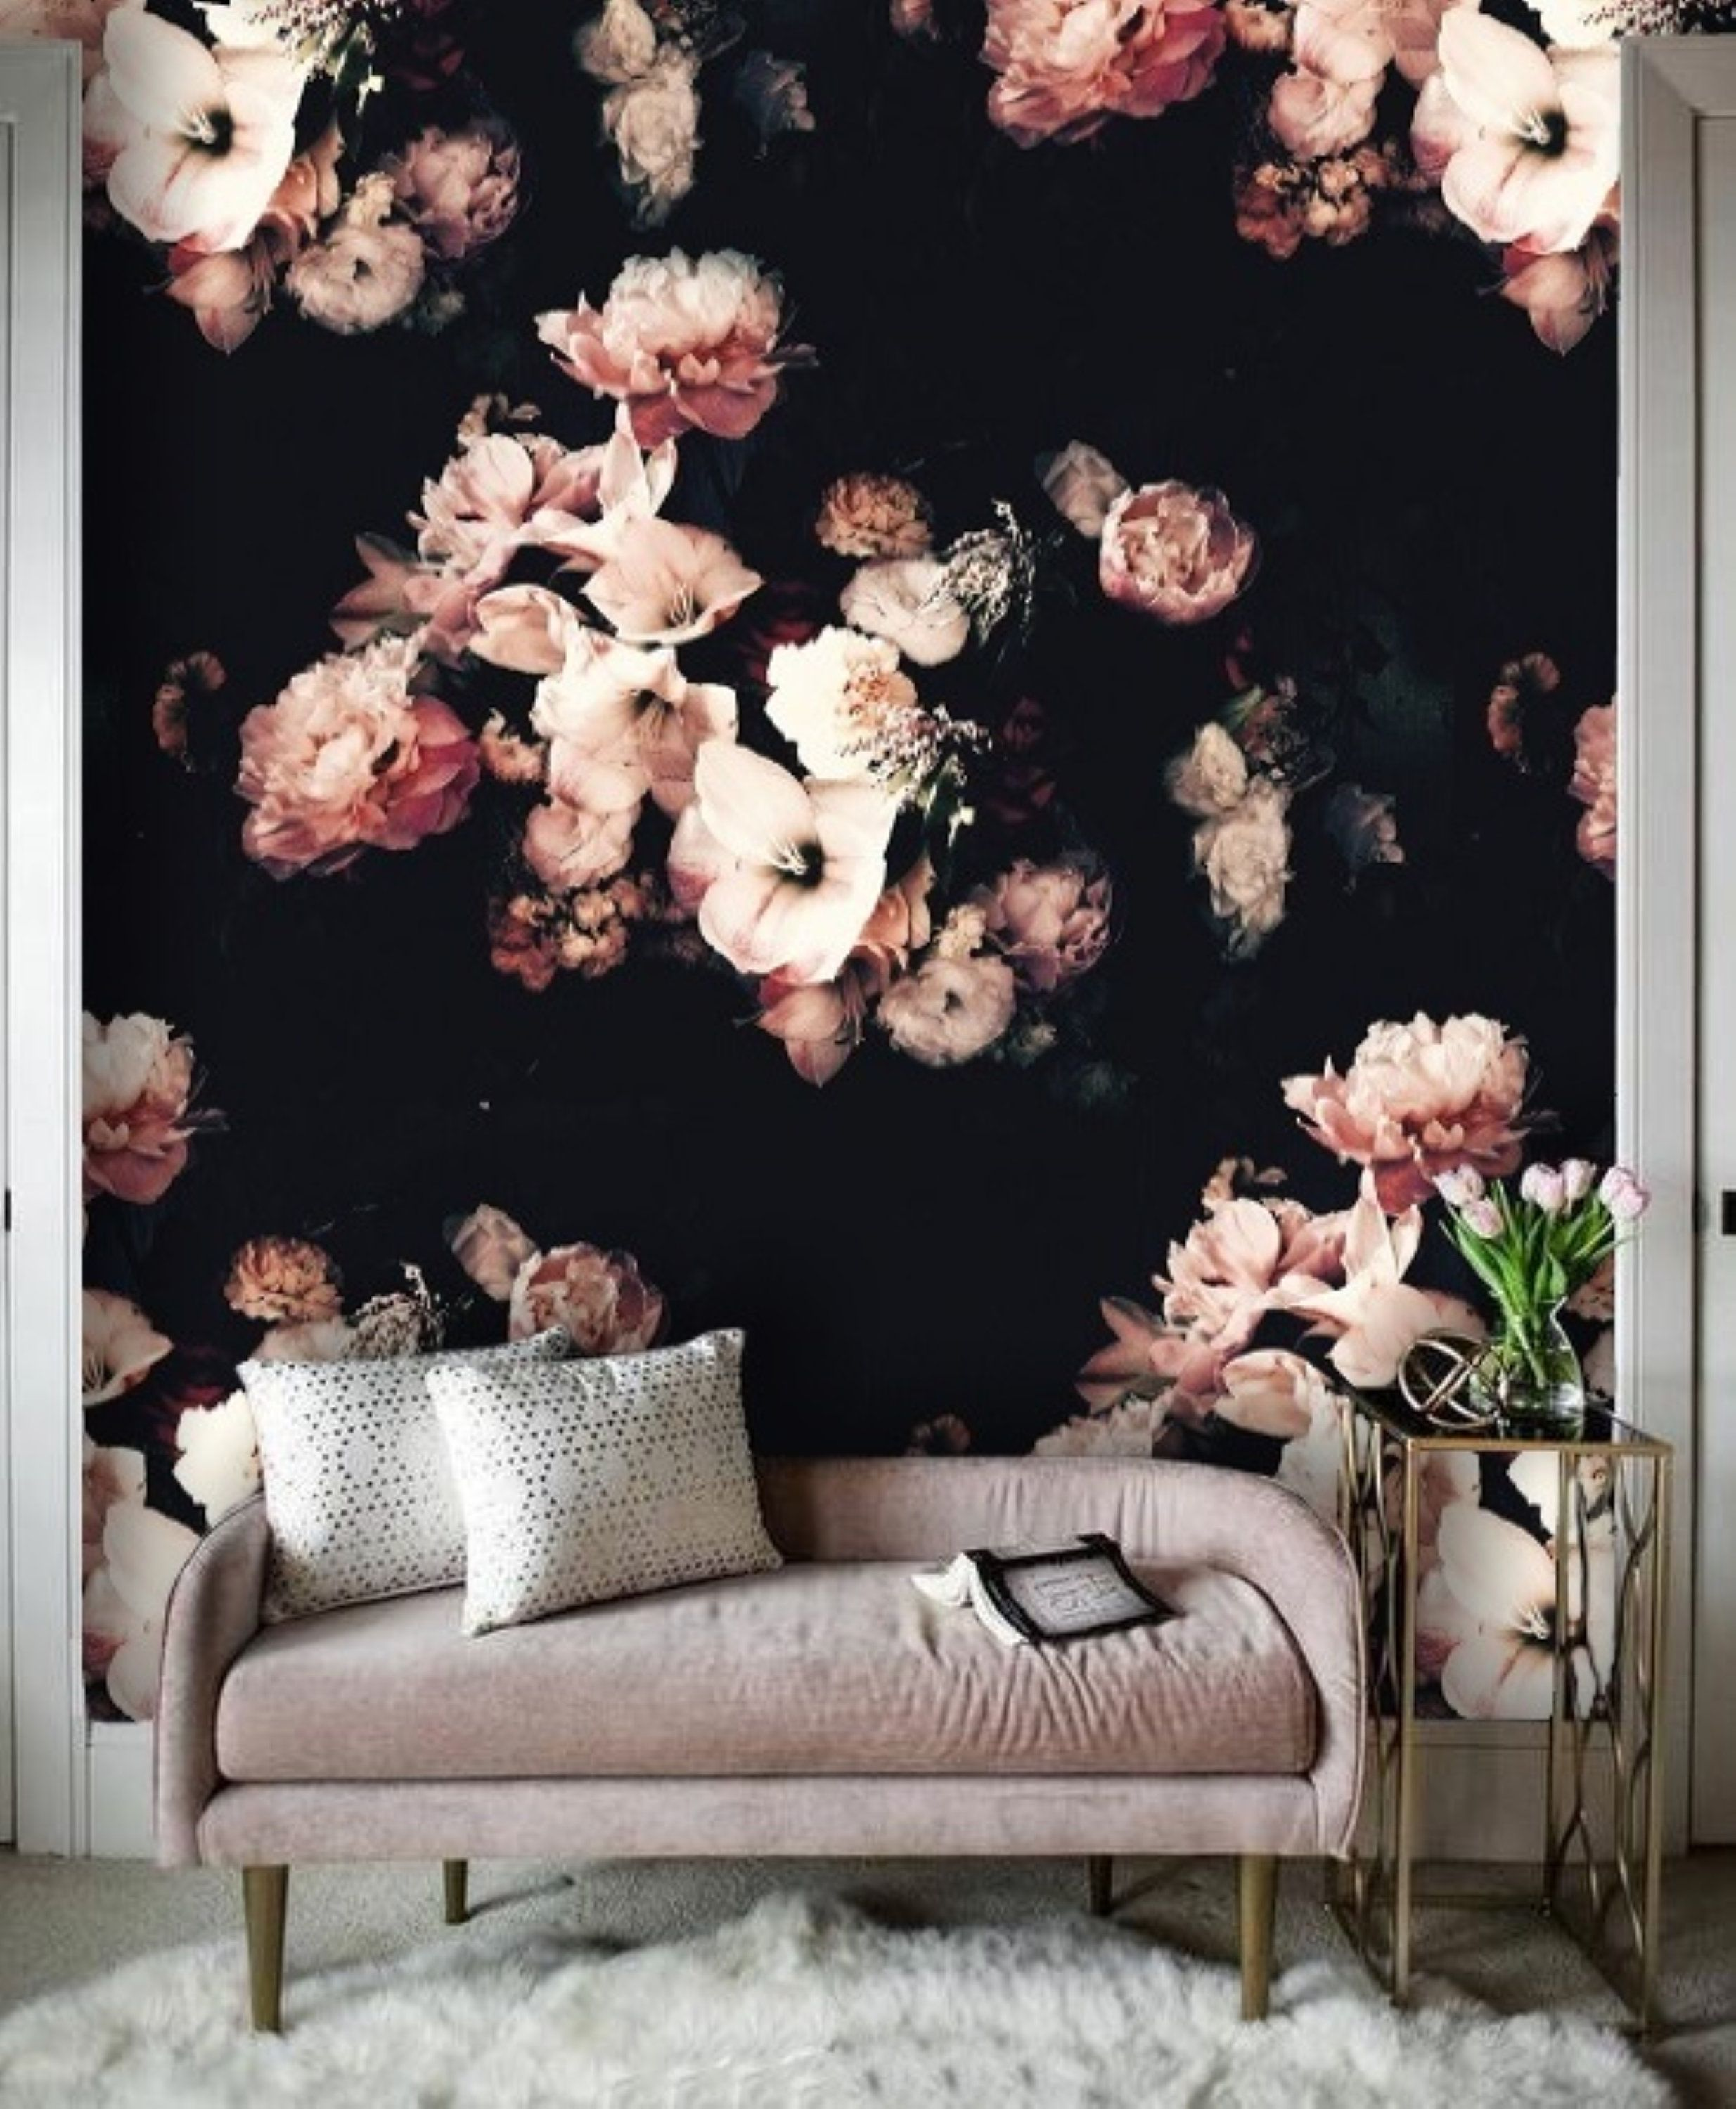 Dutch Dark Vintage Floral Removable Wallpaper Peel And Stick Etsy Large Floral Wallpaper Floral Wallpaper Black Floral Wallpaper